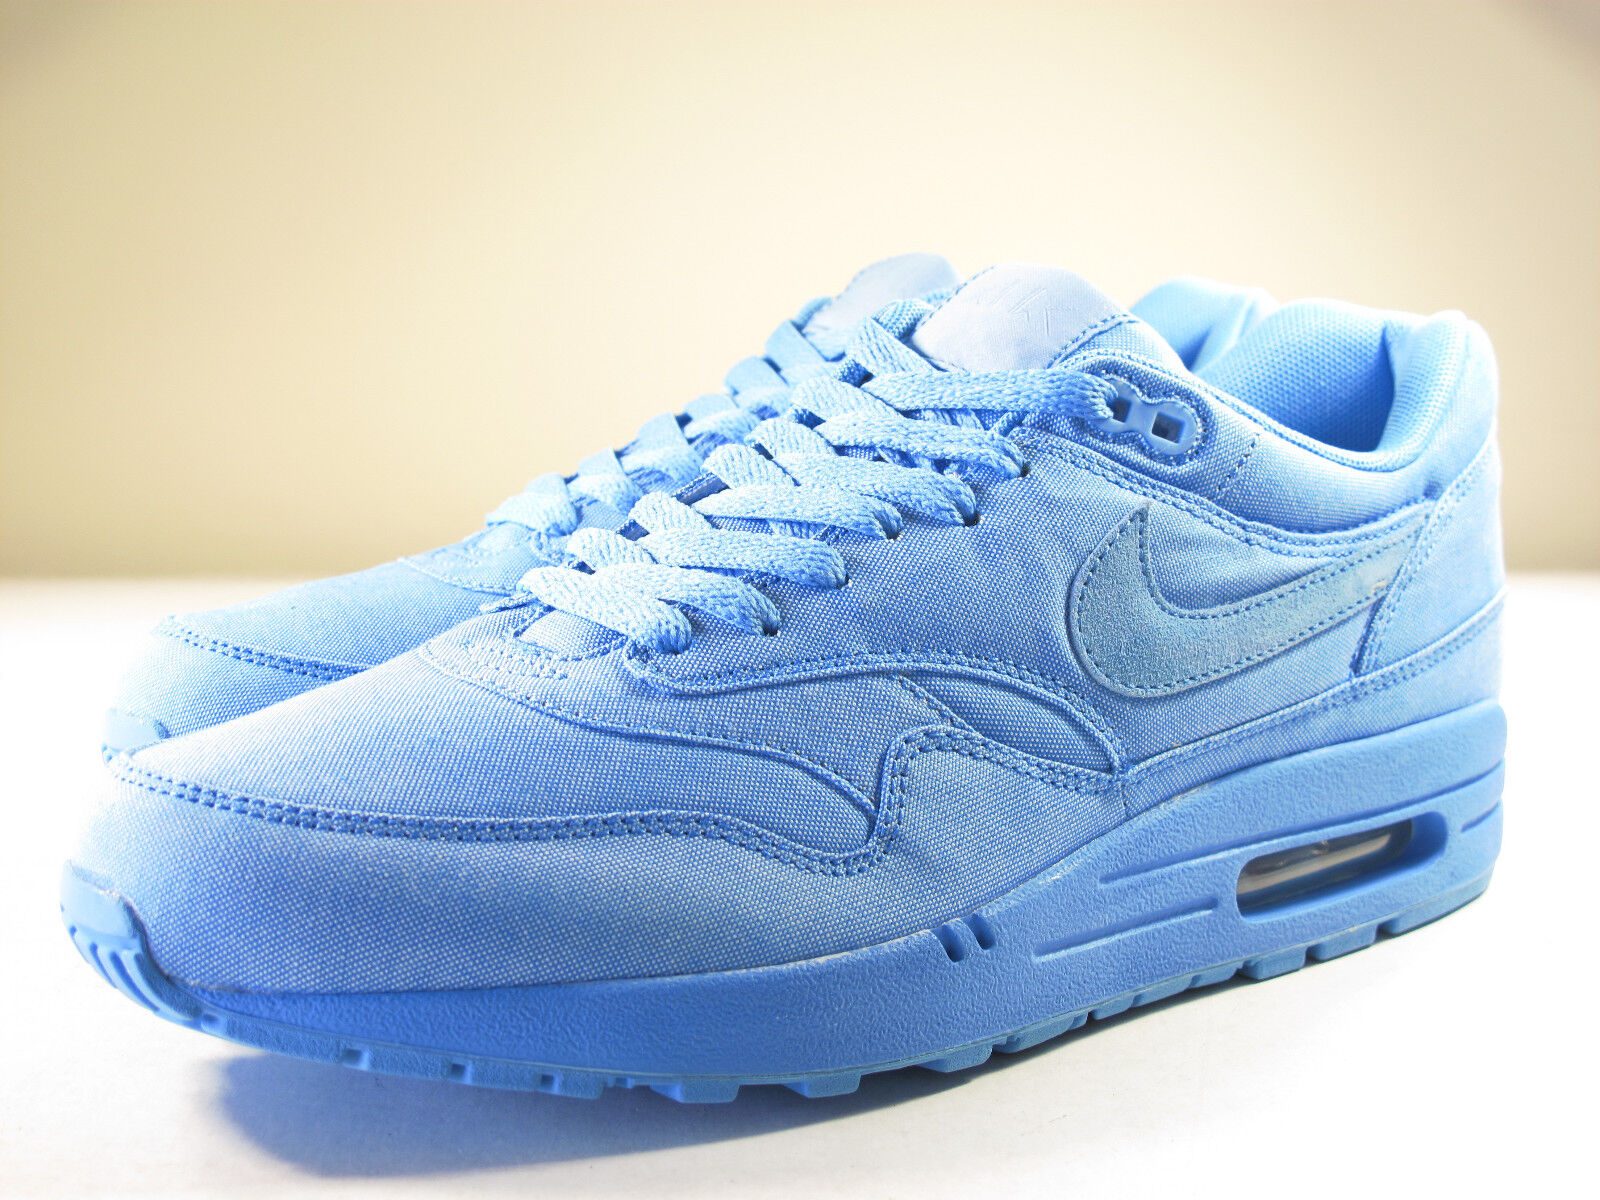 DS NIKE 2009 AIR MAX 1 ATTACK PACK BLUE 9.5 180 SAFARI 90 95 97 180 9.5 plus 93 CAMO 7fb309